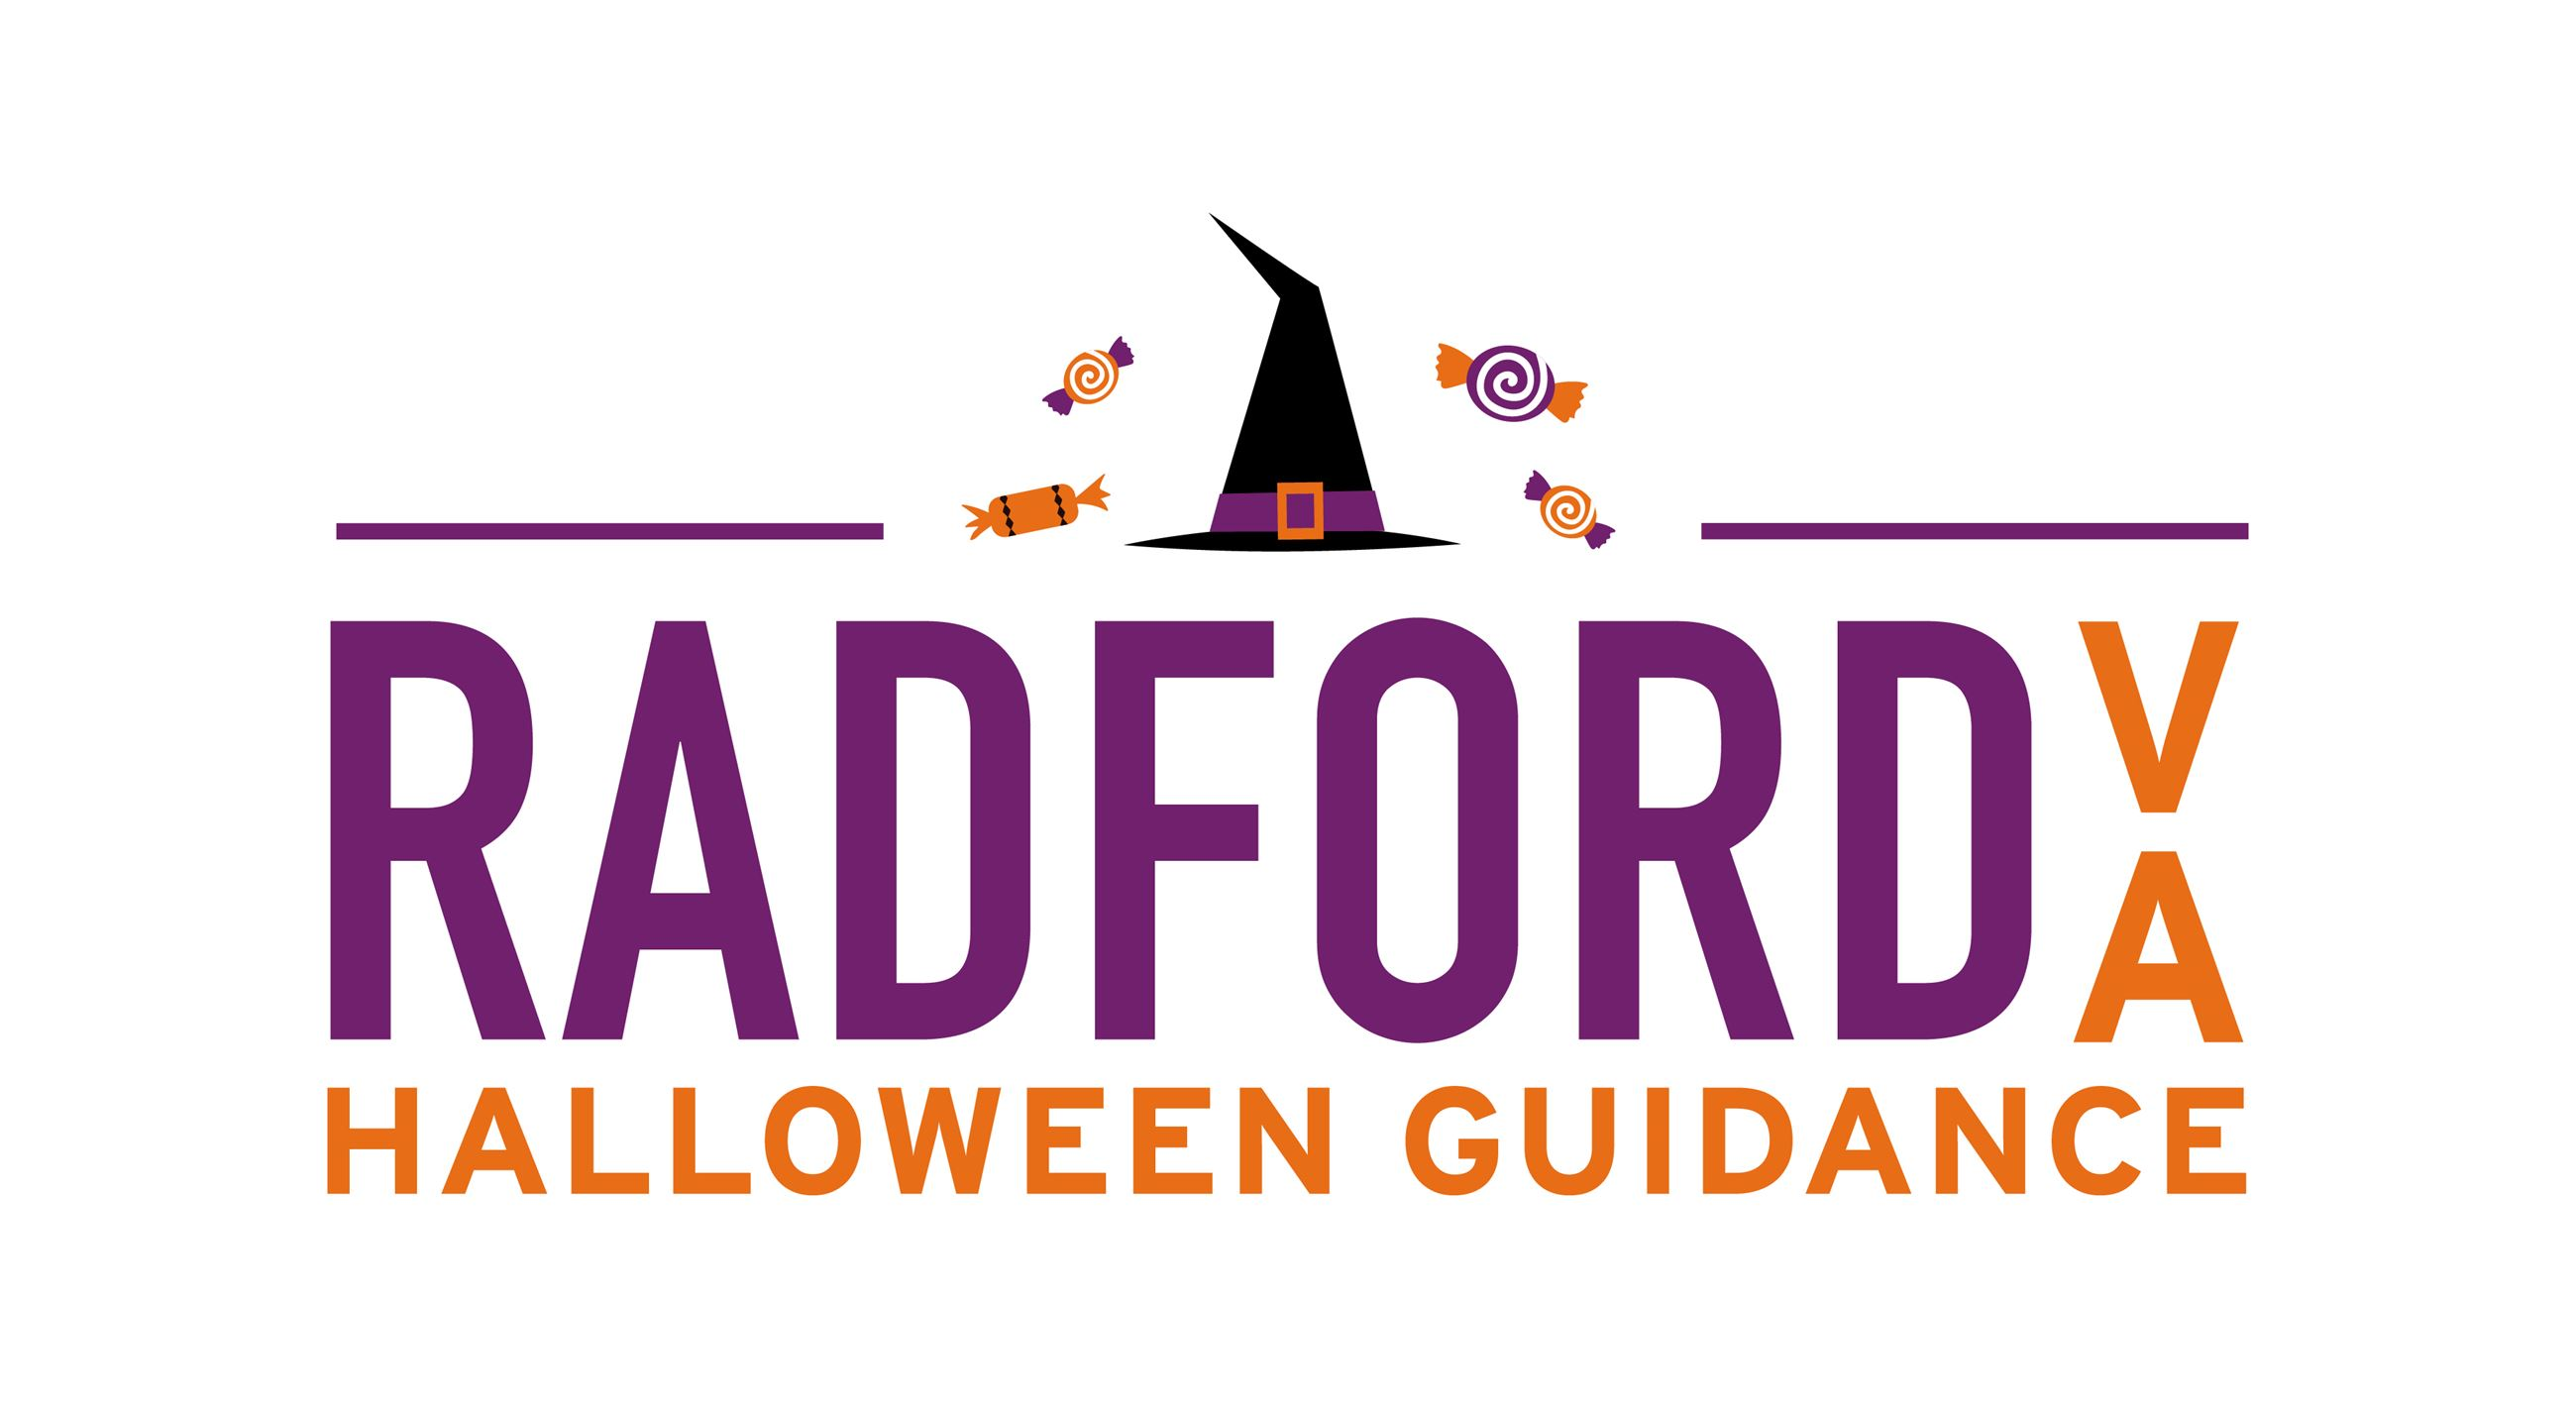 Radford Halloween Guidance Logo